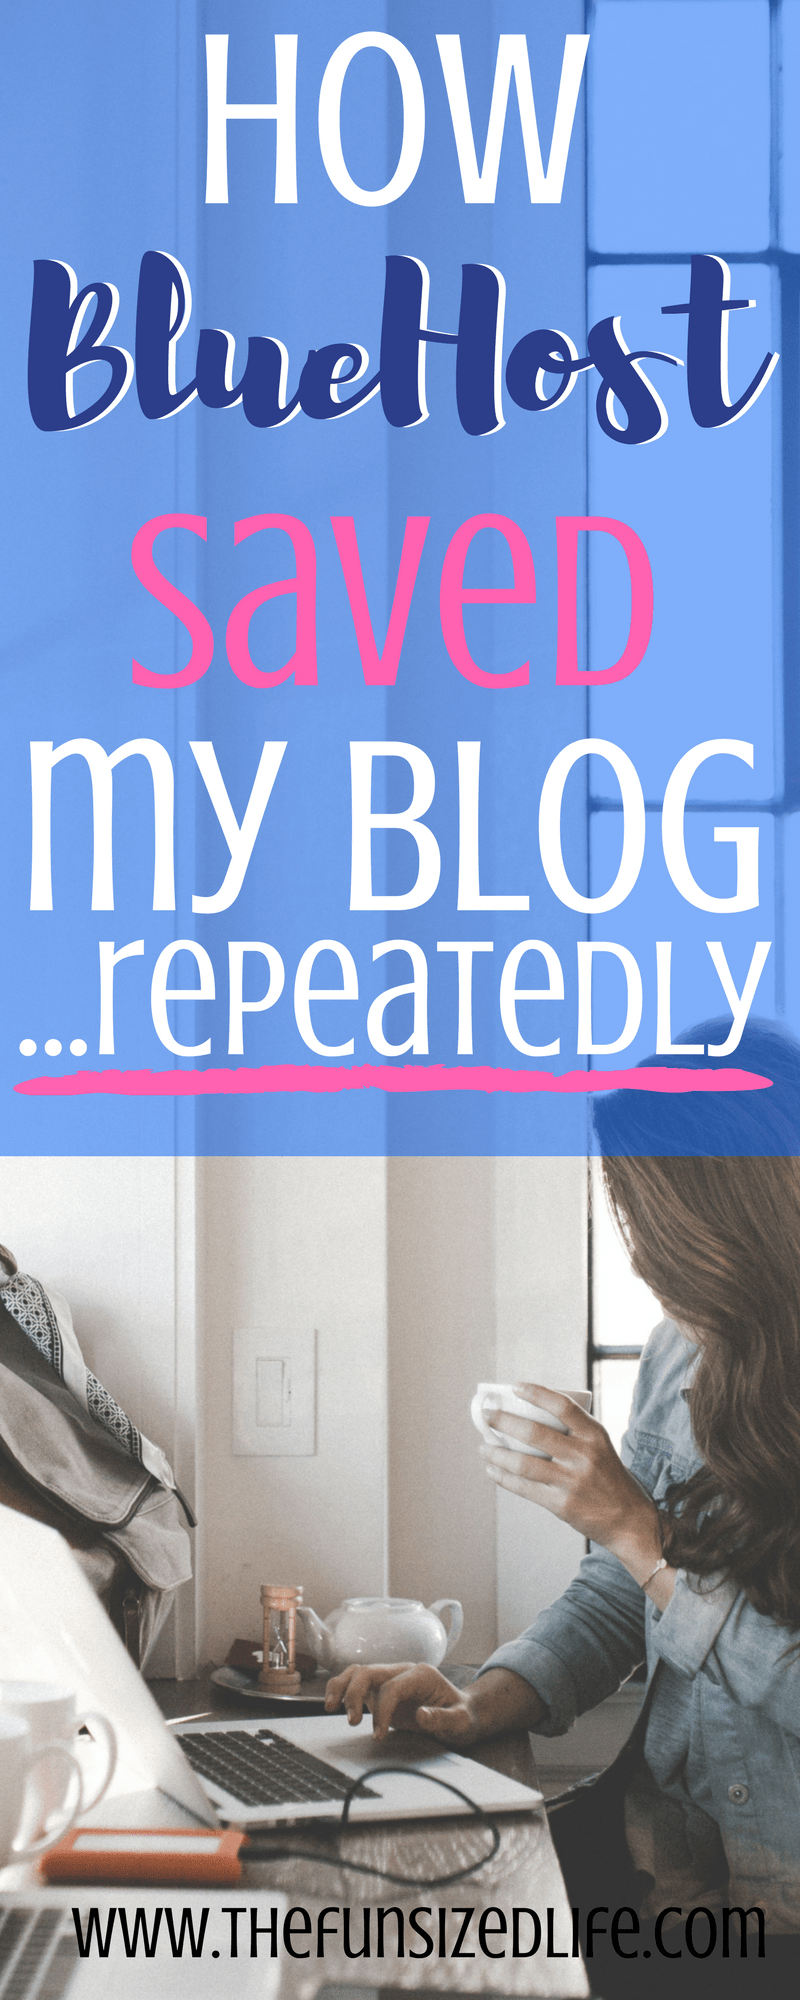 Seriously BlueHost has been a blogging lifesaver! From rebranding to so many blog issues, I'm so thankful for BlueHost. Here is a full review! #BlueHost #review #blogging #blog #Rebranding